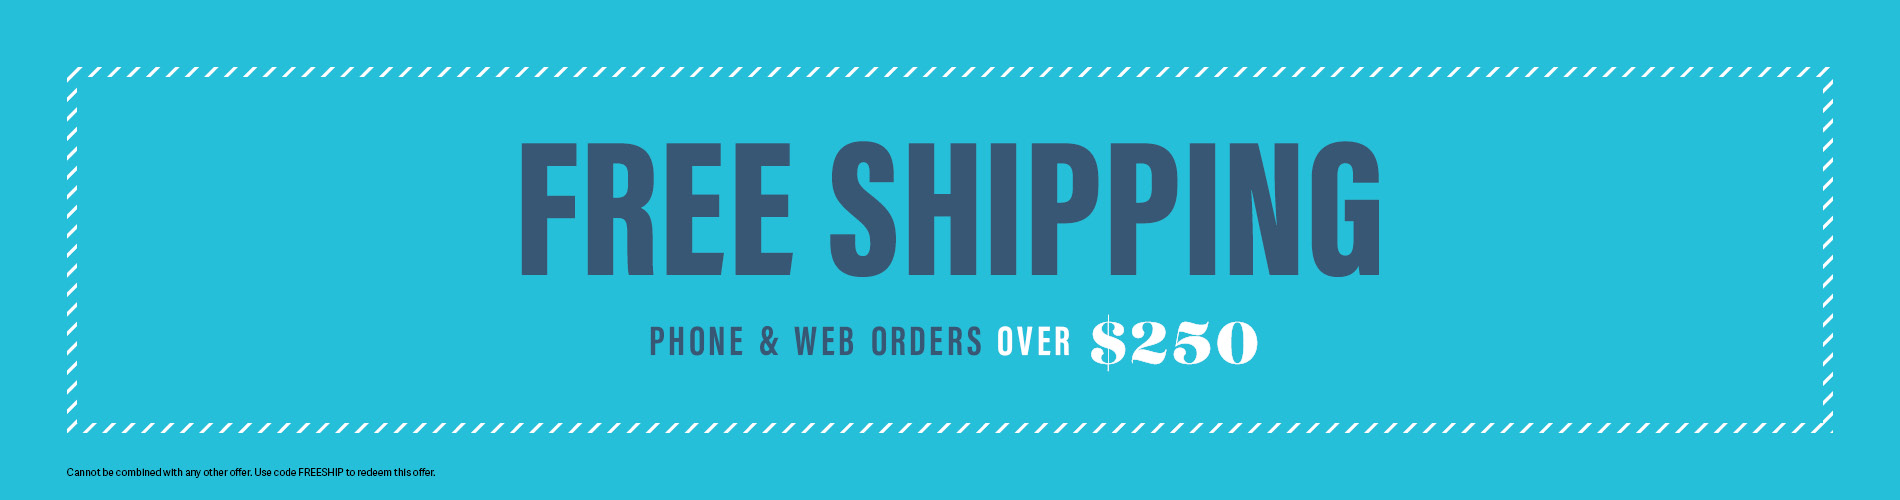 free shipping on eyewear $250 or more